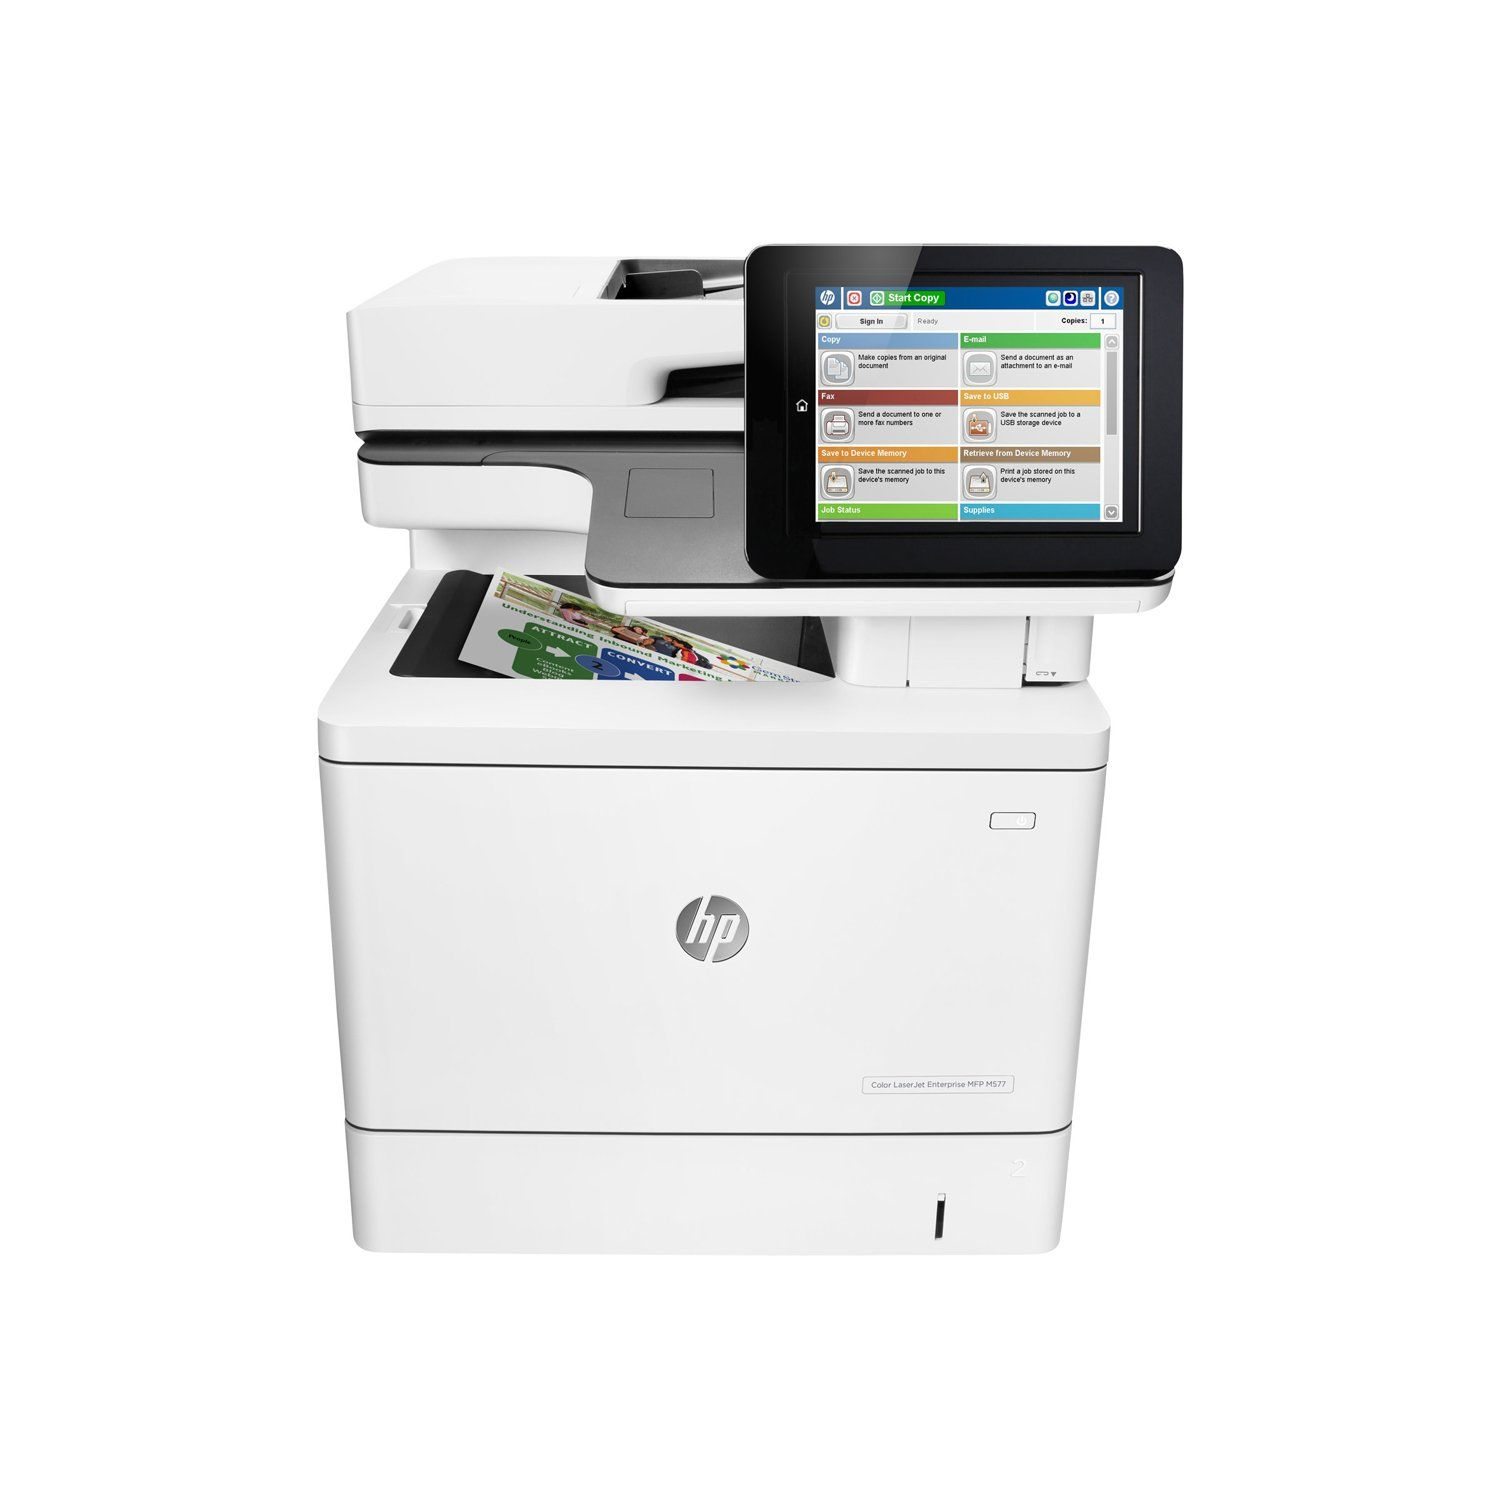 Hp Laserjet Mfp M577f Find Out More About The Great Product At